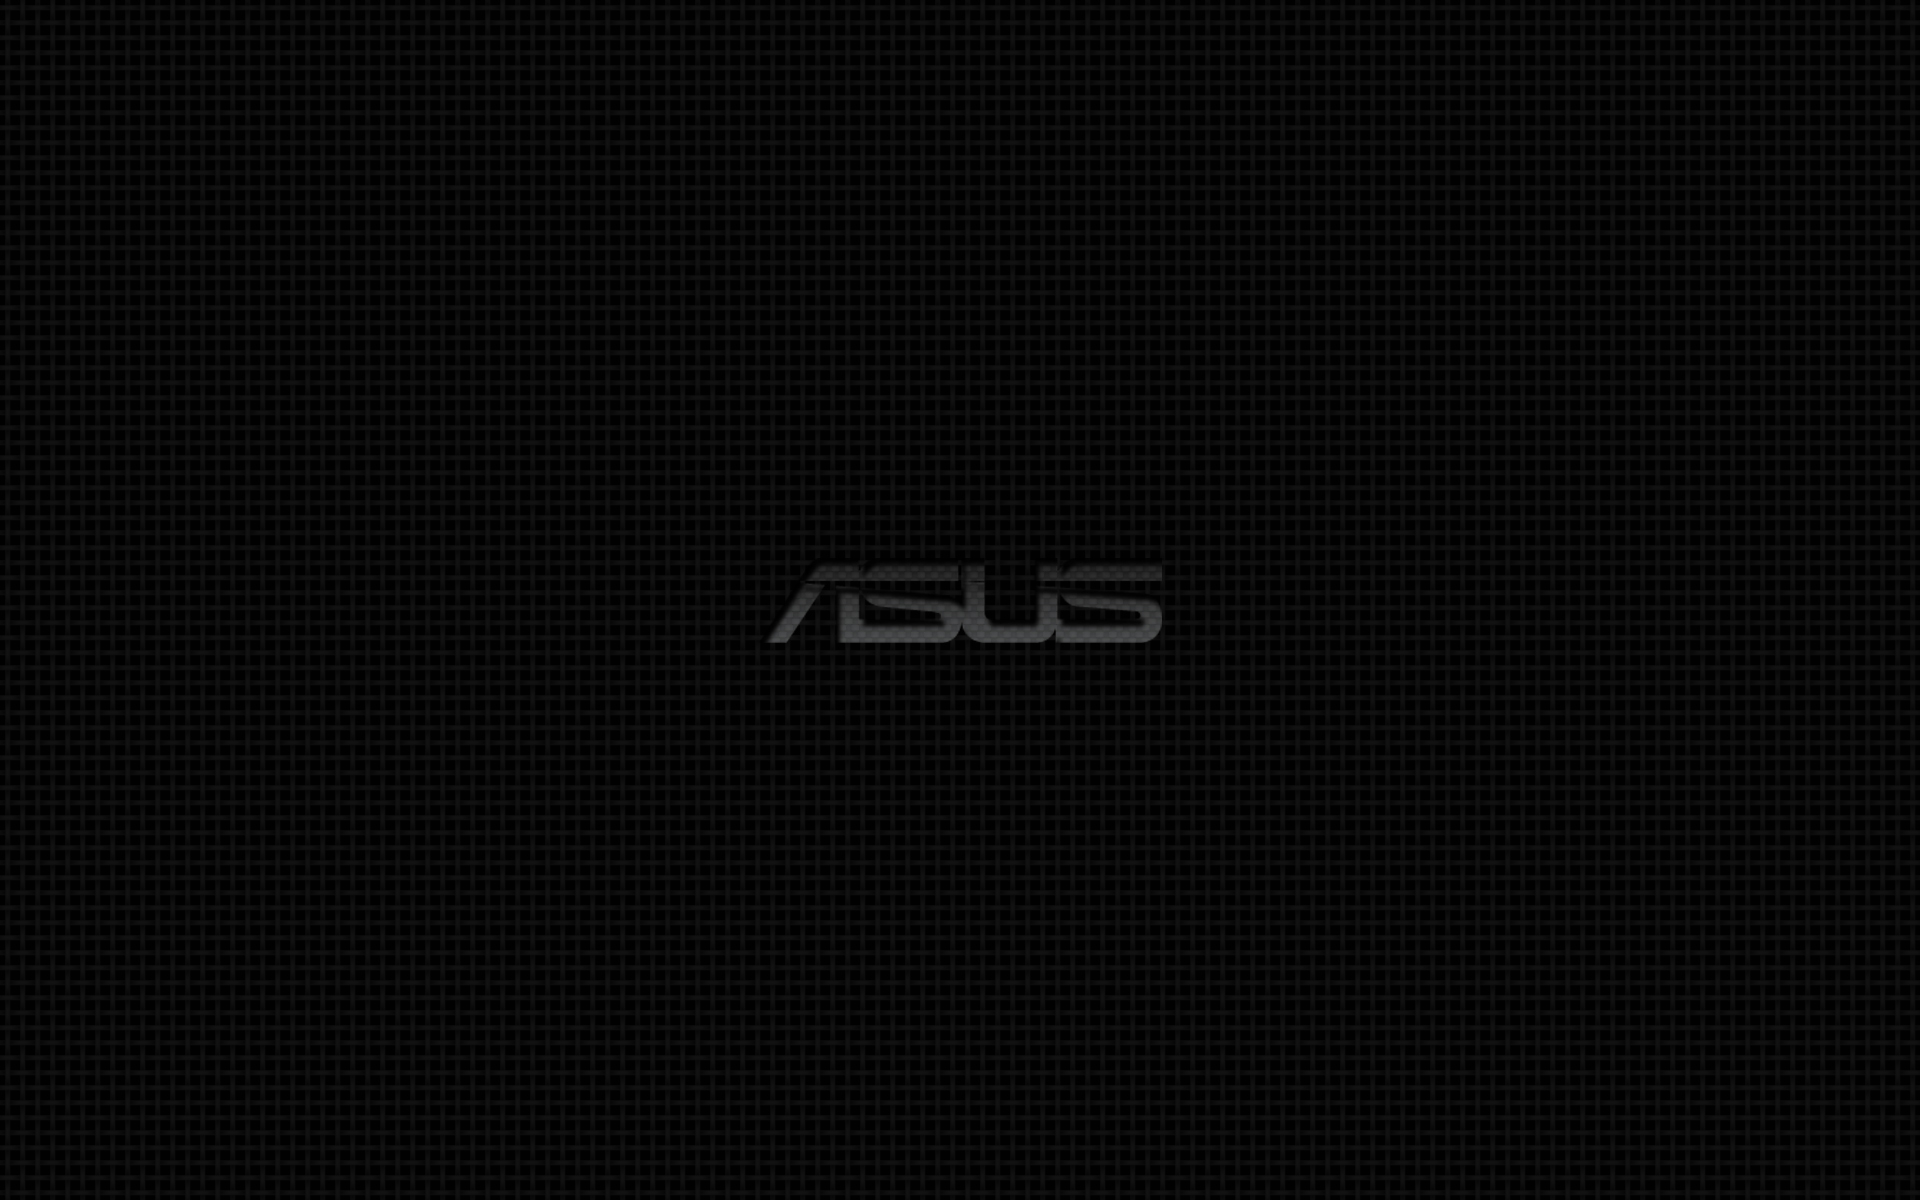 Abstract Asus Wallpaper 1920x1200 Abstract Asus 1920x1200